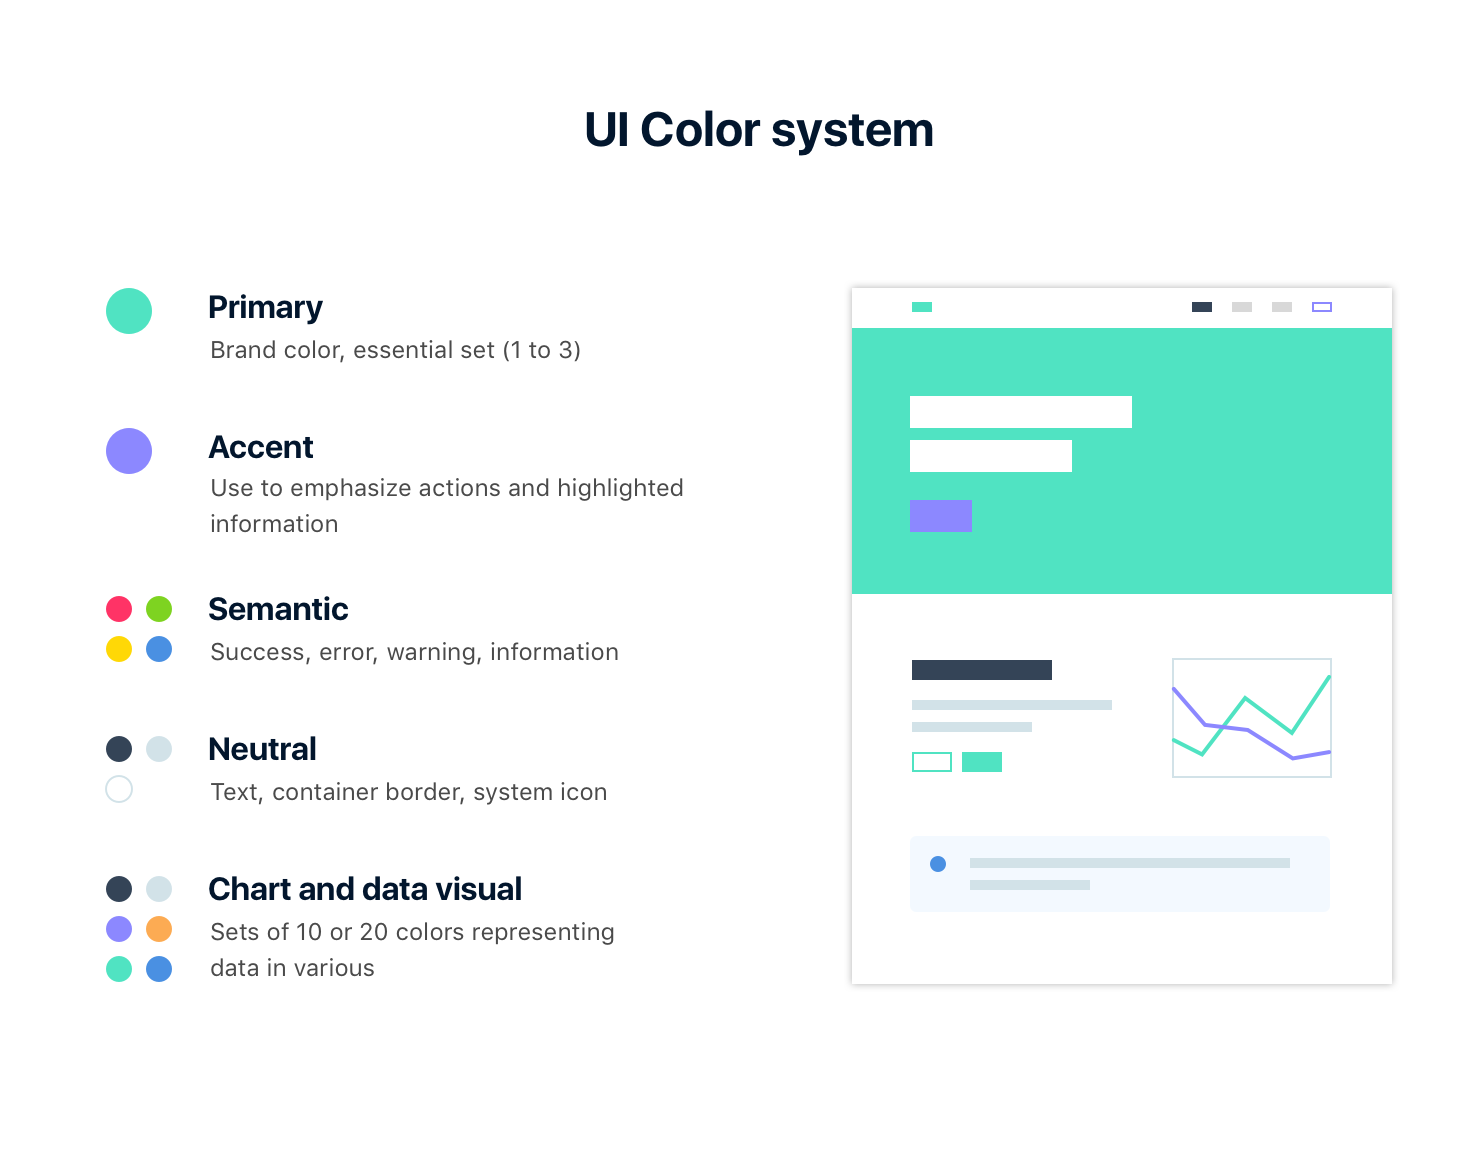 Basic UI color guide